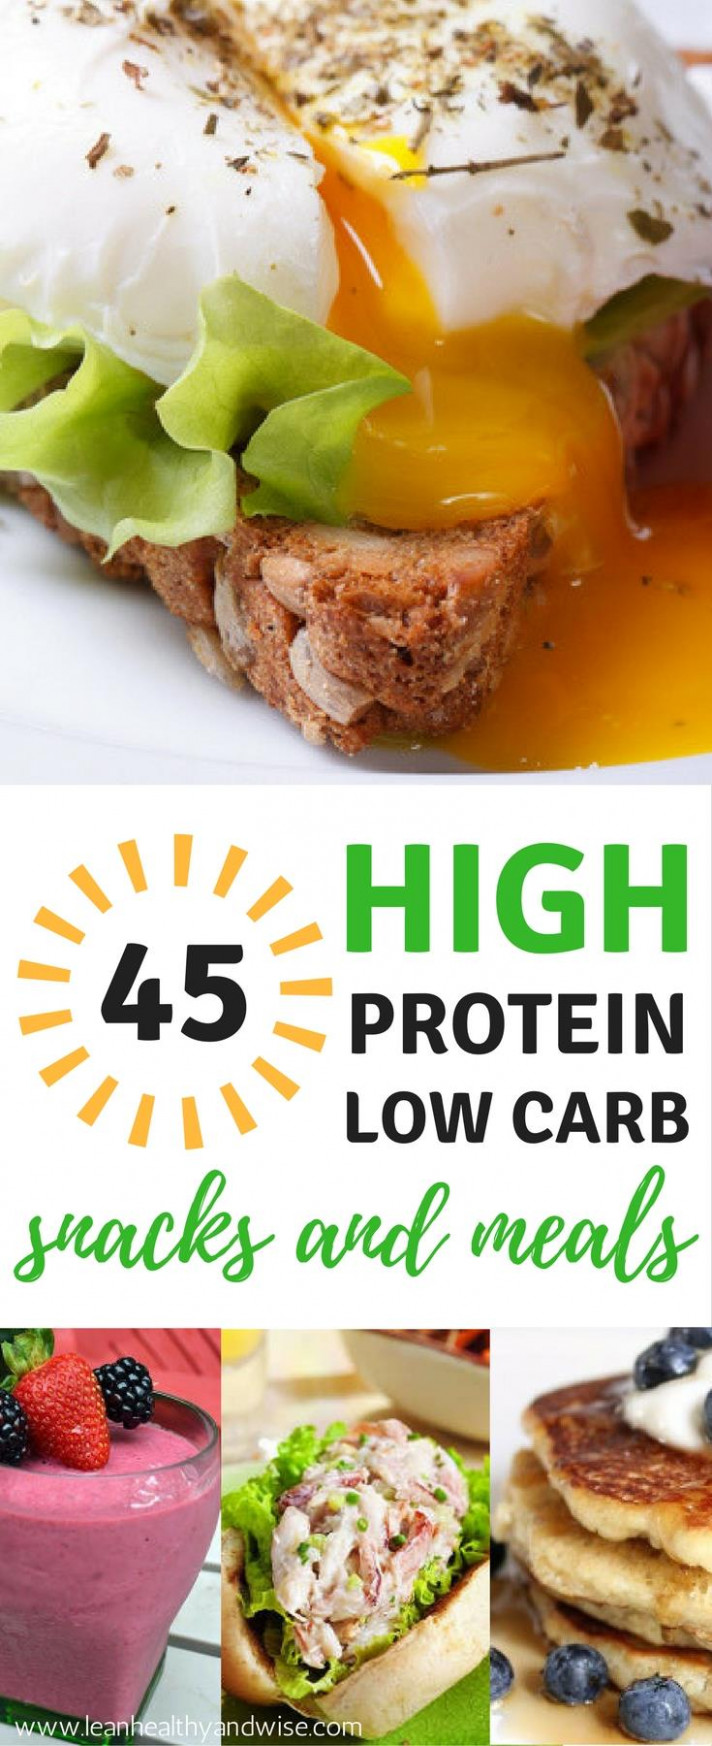 45 High Protein Low Carb Snacks and Meals: Best Weight ..